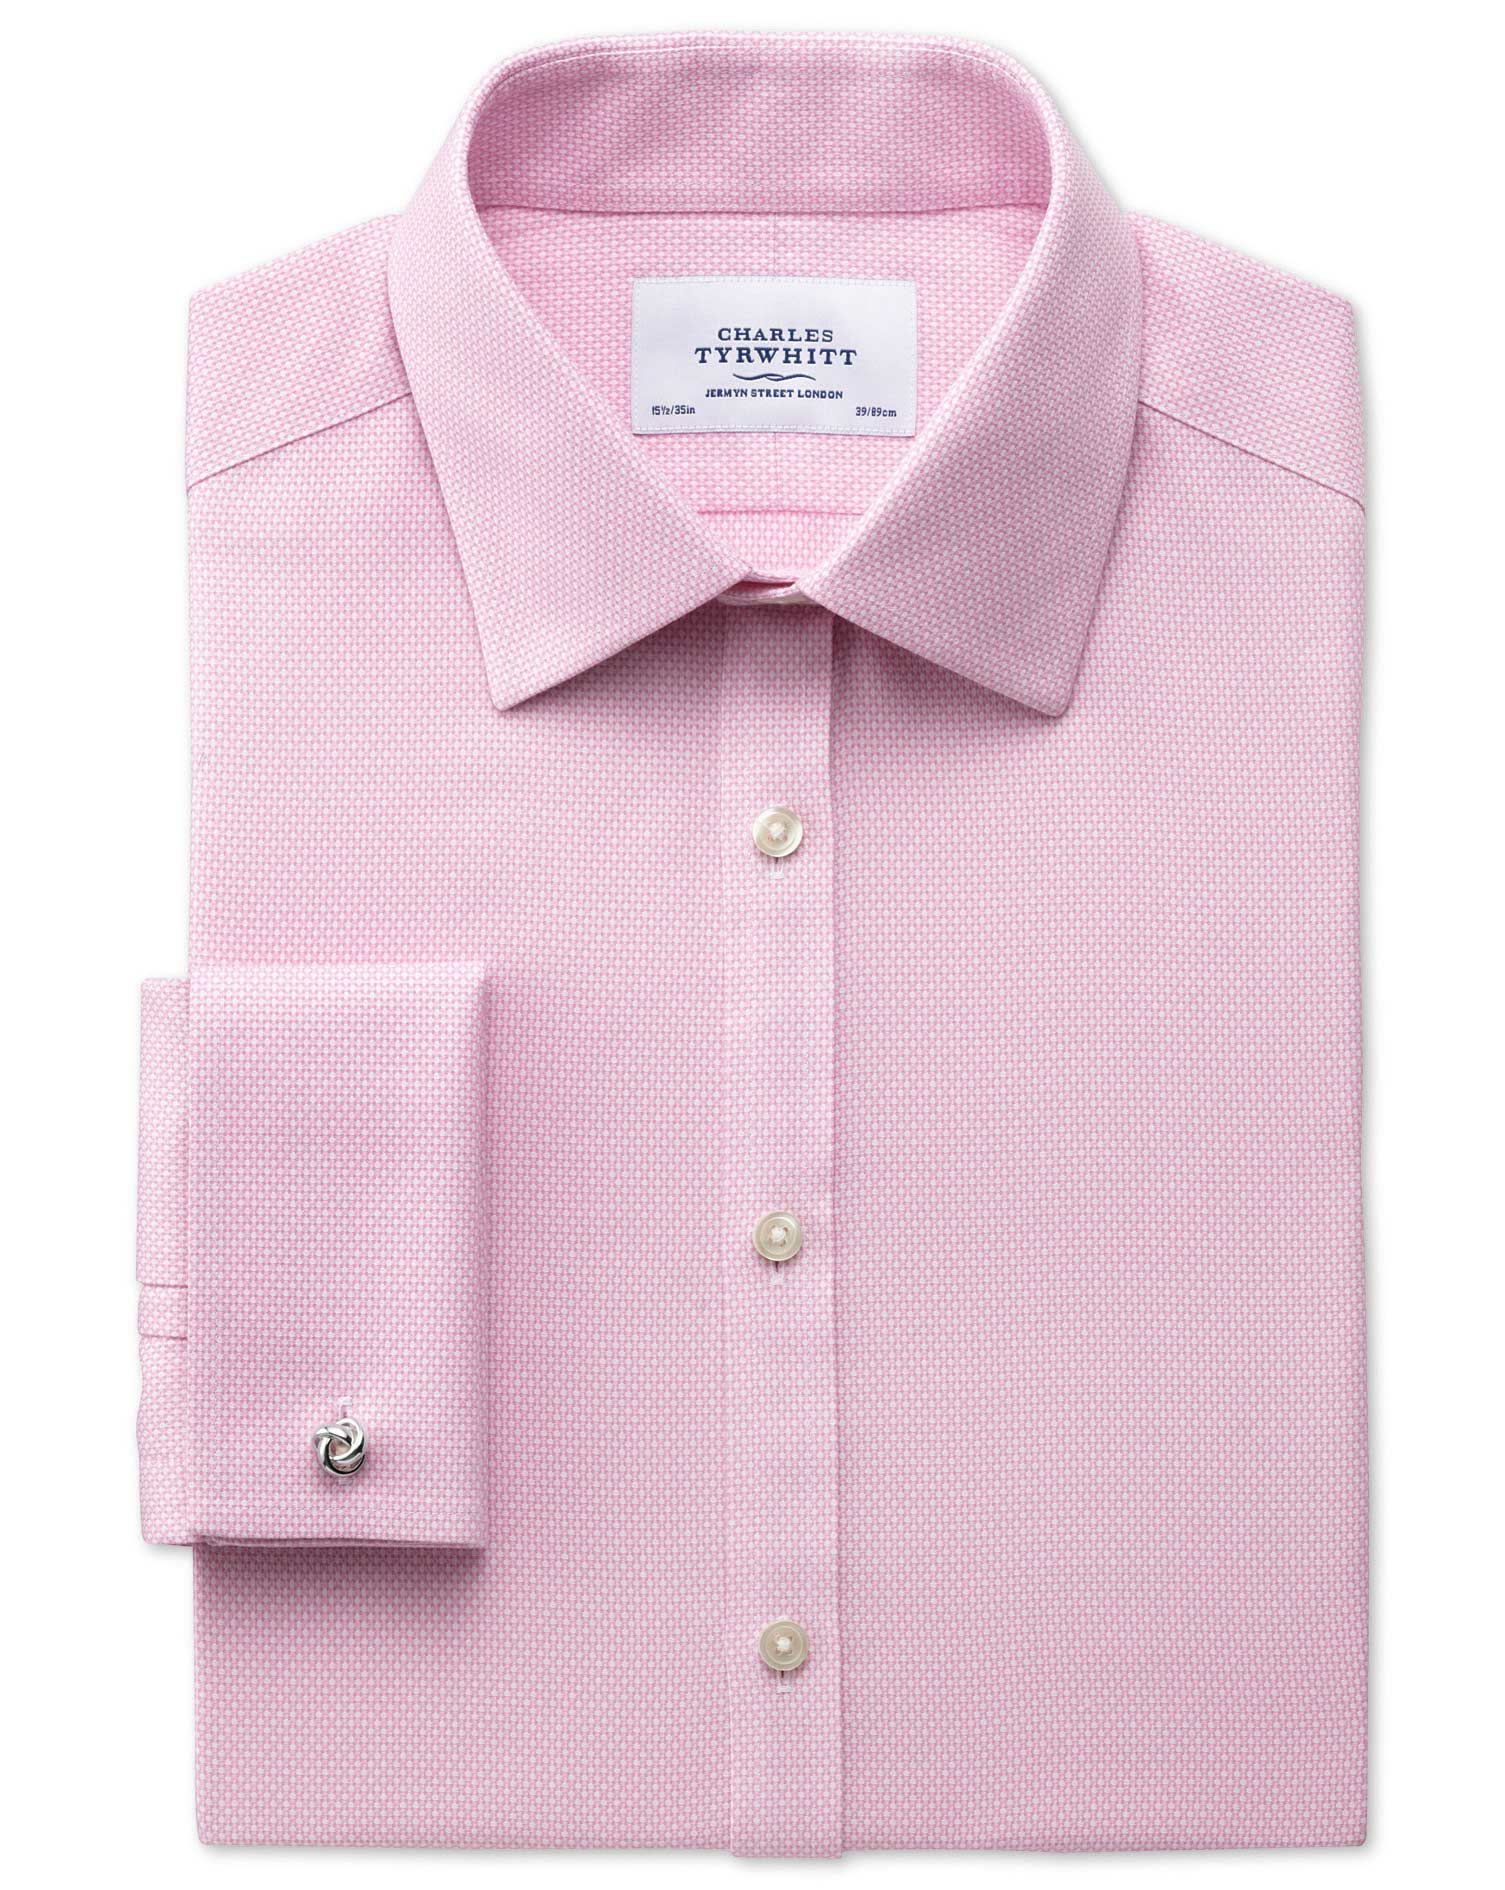 Classic Fit Non-Iron Honeycomb Pink Cotton Formal Shirt Single Cuff Size 15/35 by Charles Tyrwhitt